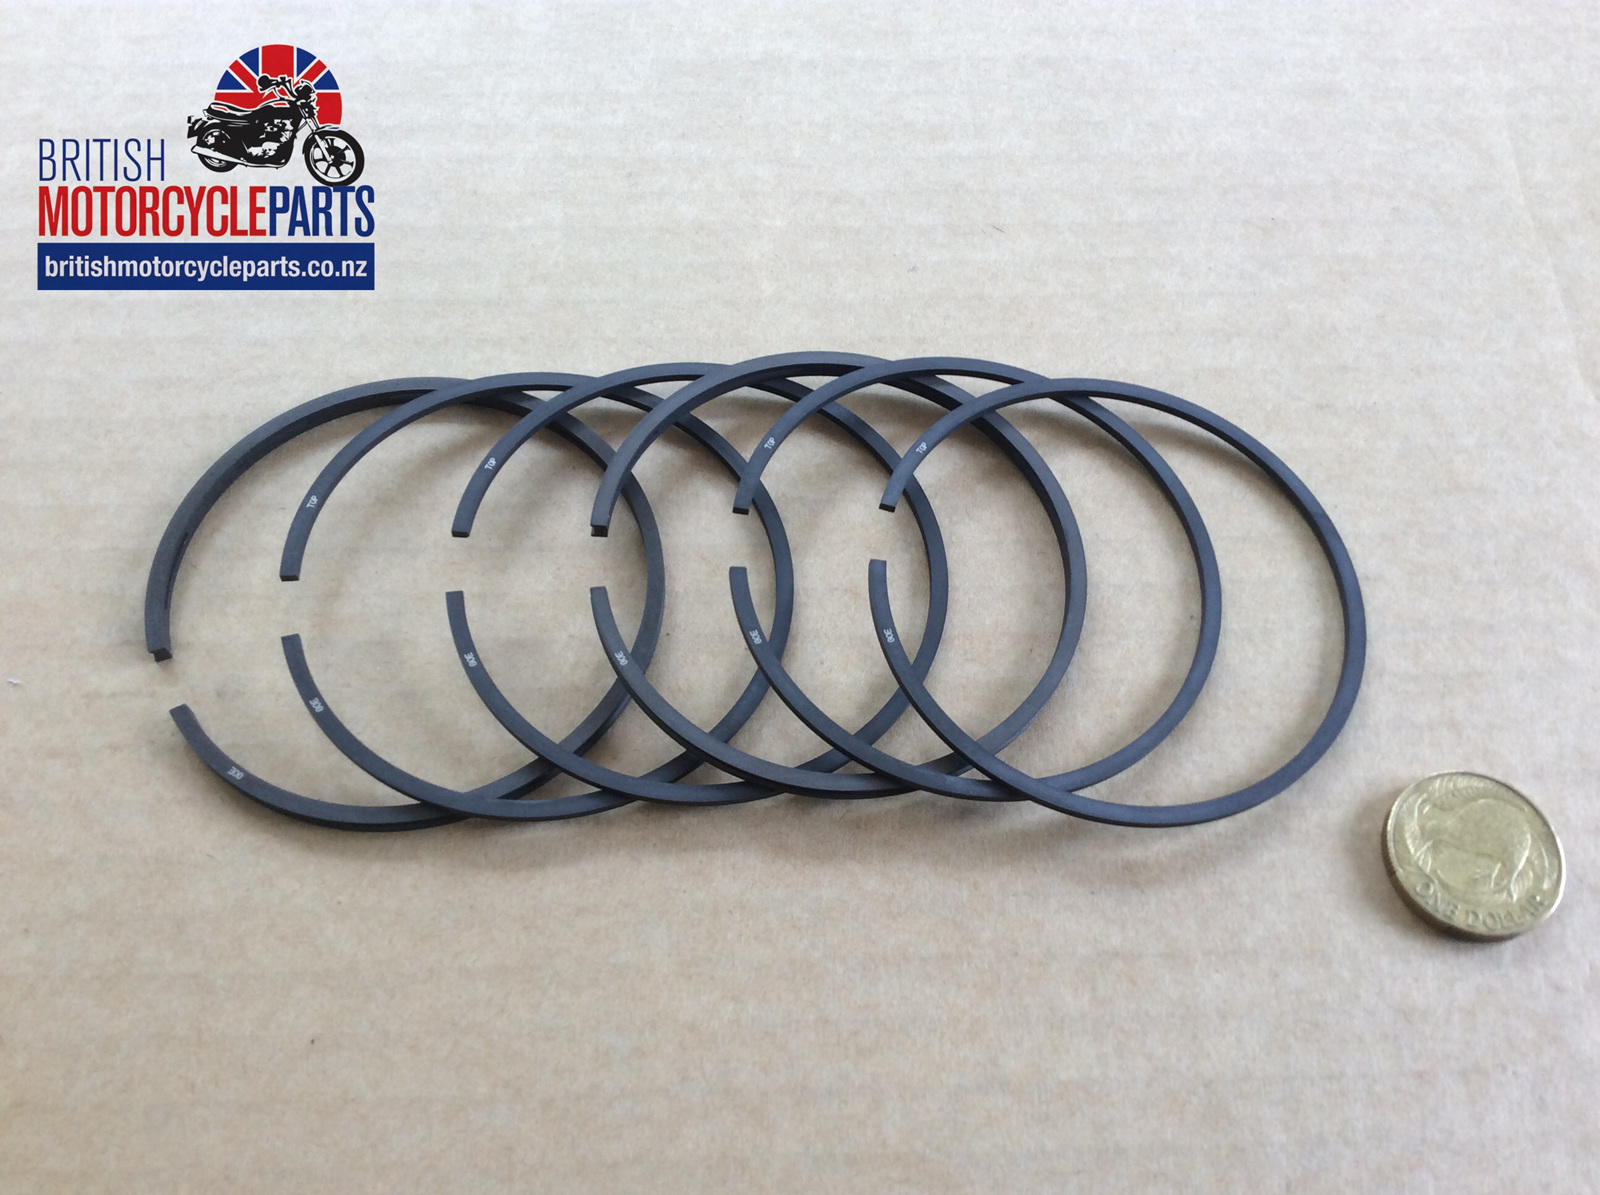 r13570 triumph 500cc piston ring set - t100 5ta rings - british